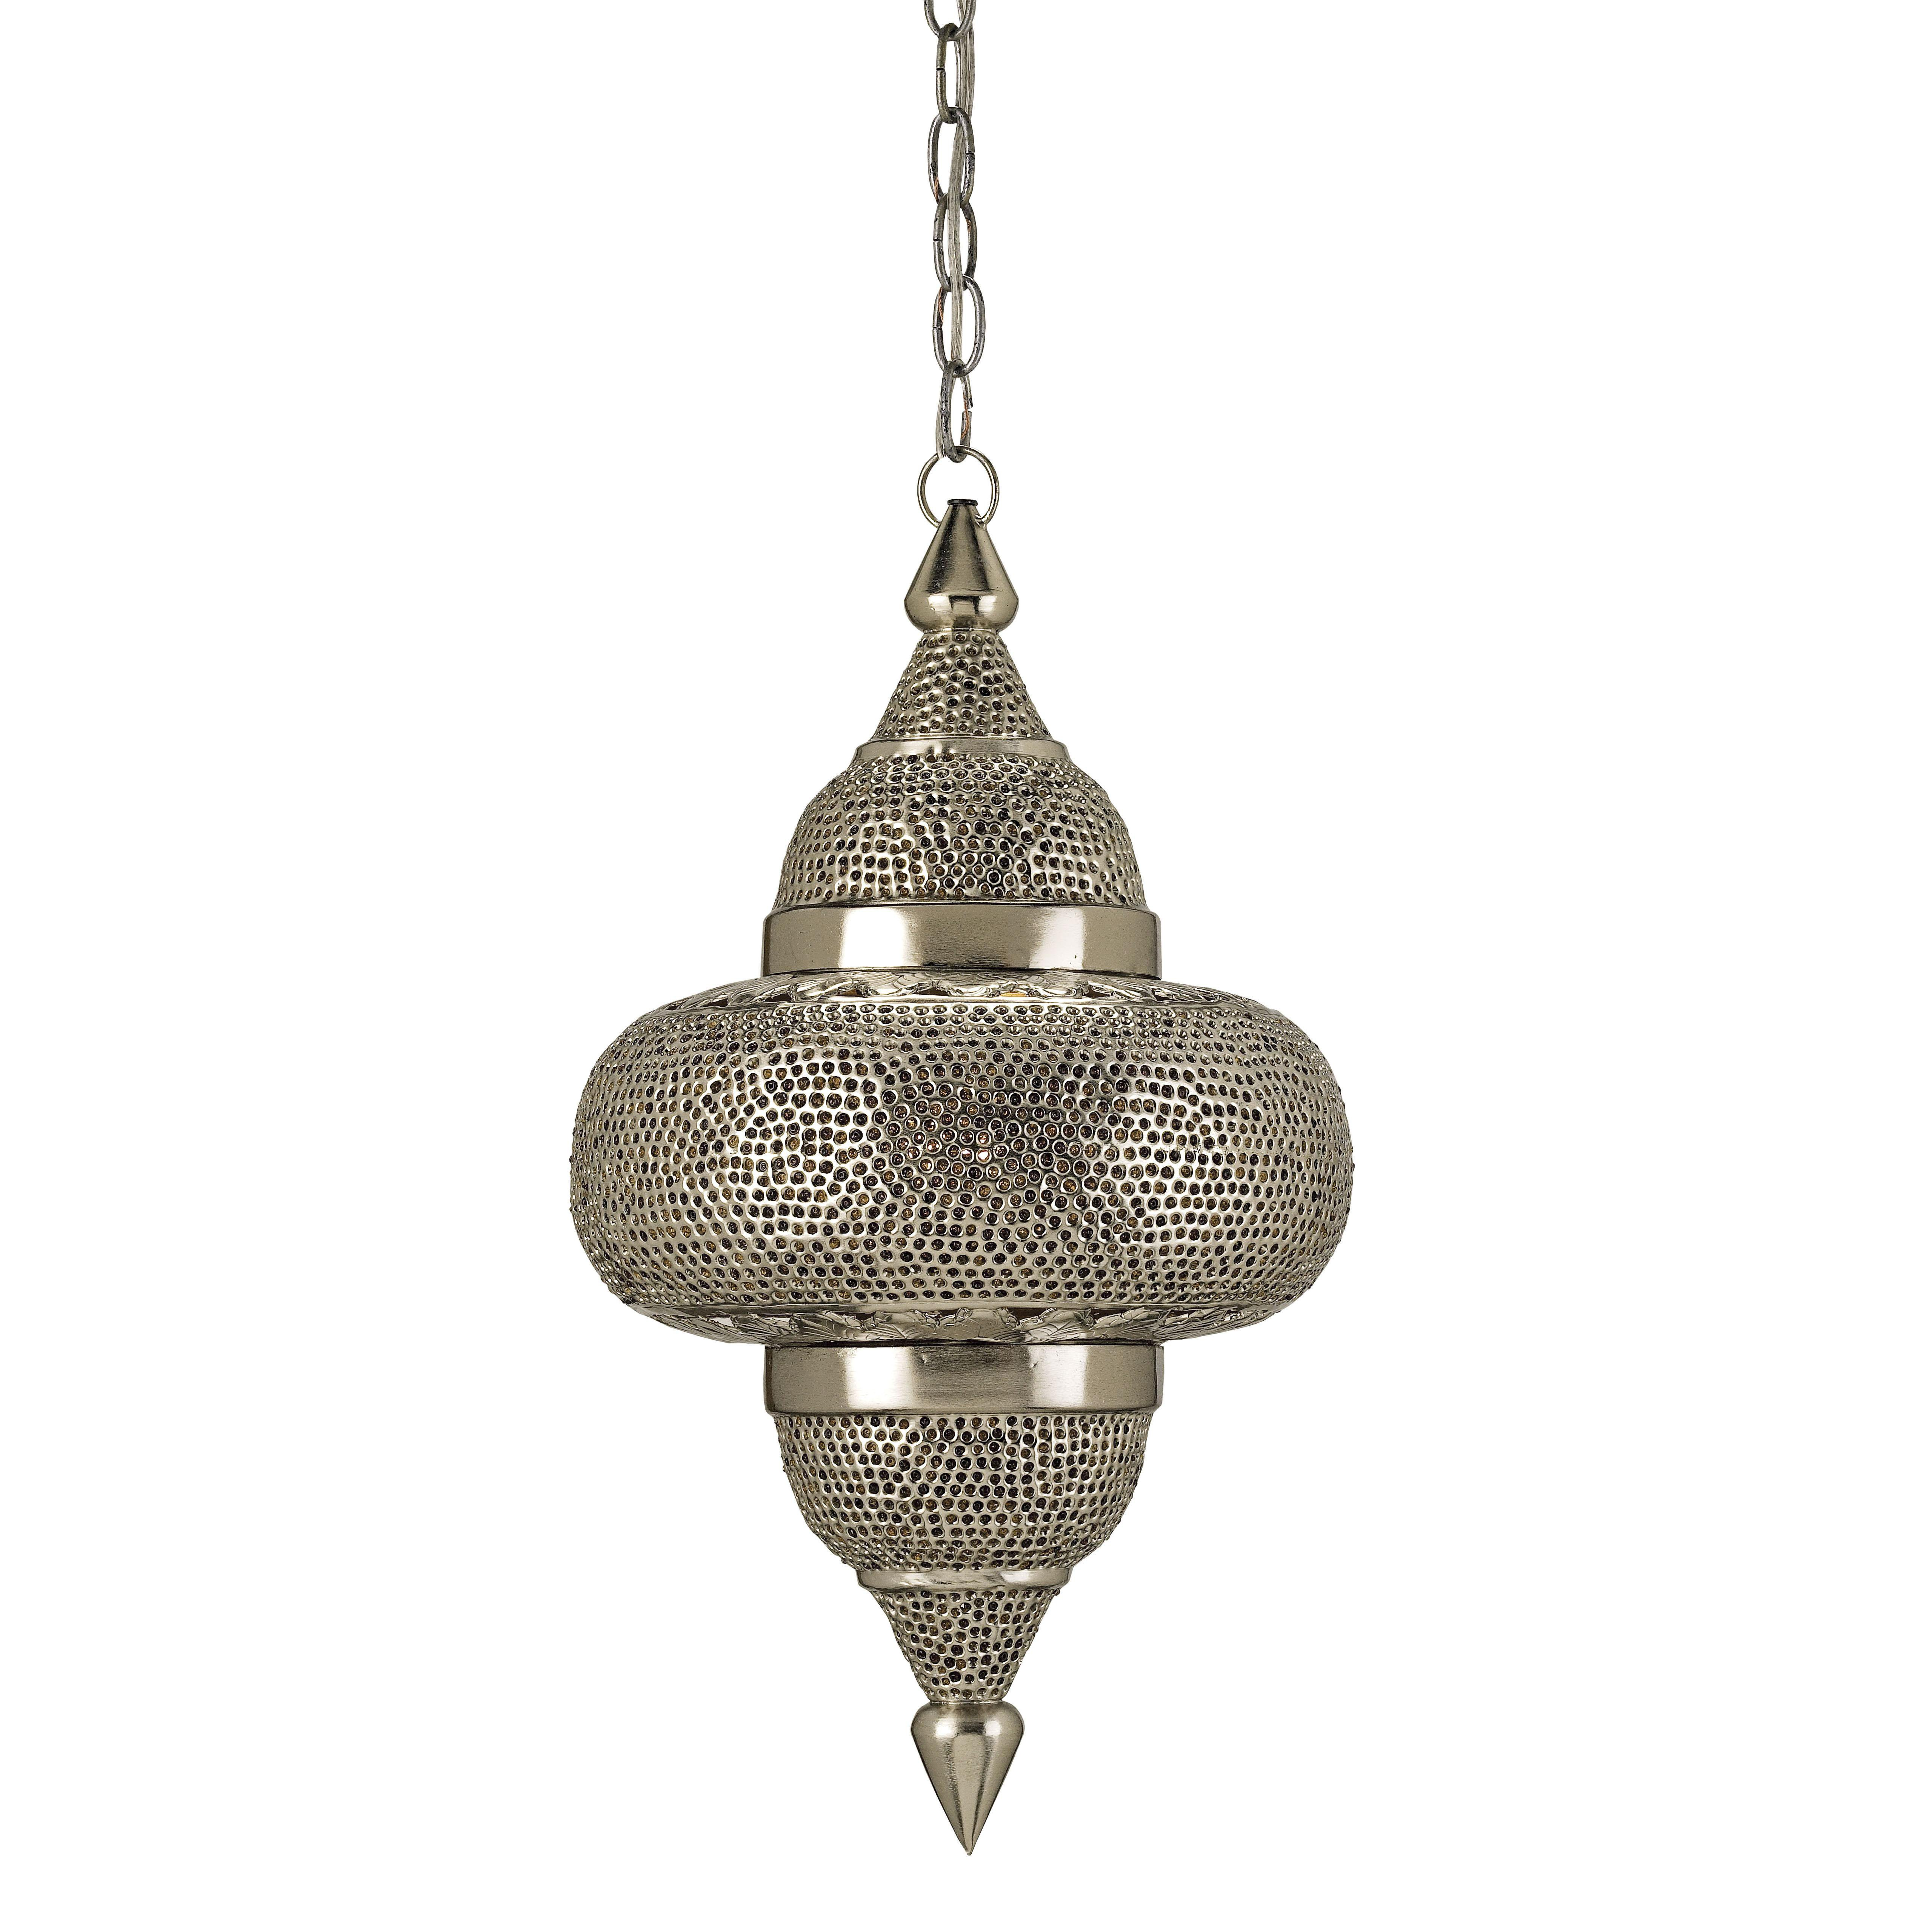 Currey And Company Tangiers Pendant - Currey-co-9103 | Candelabra, Inc.